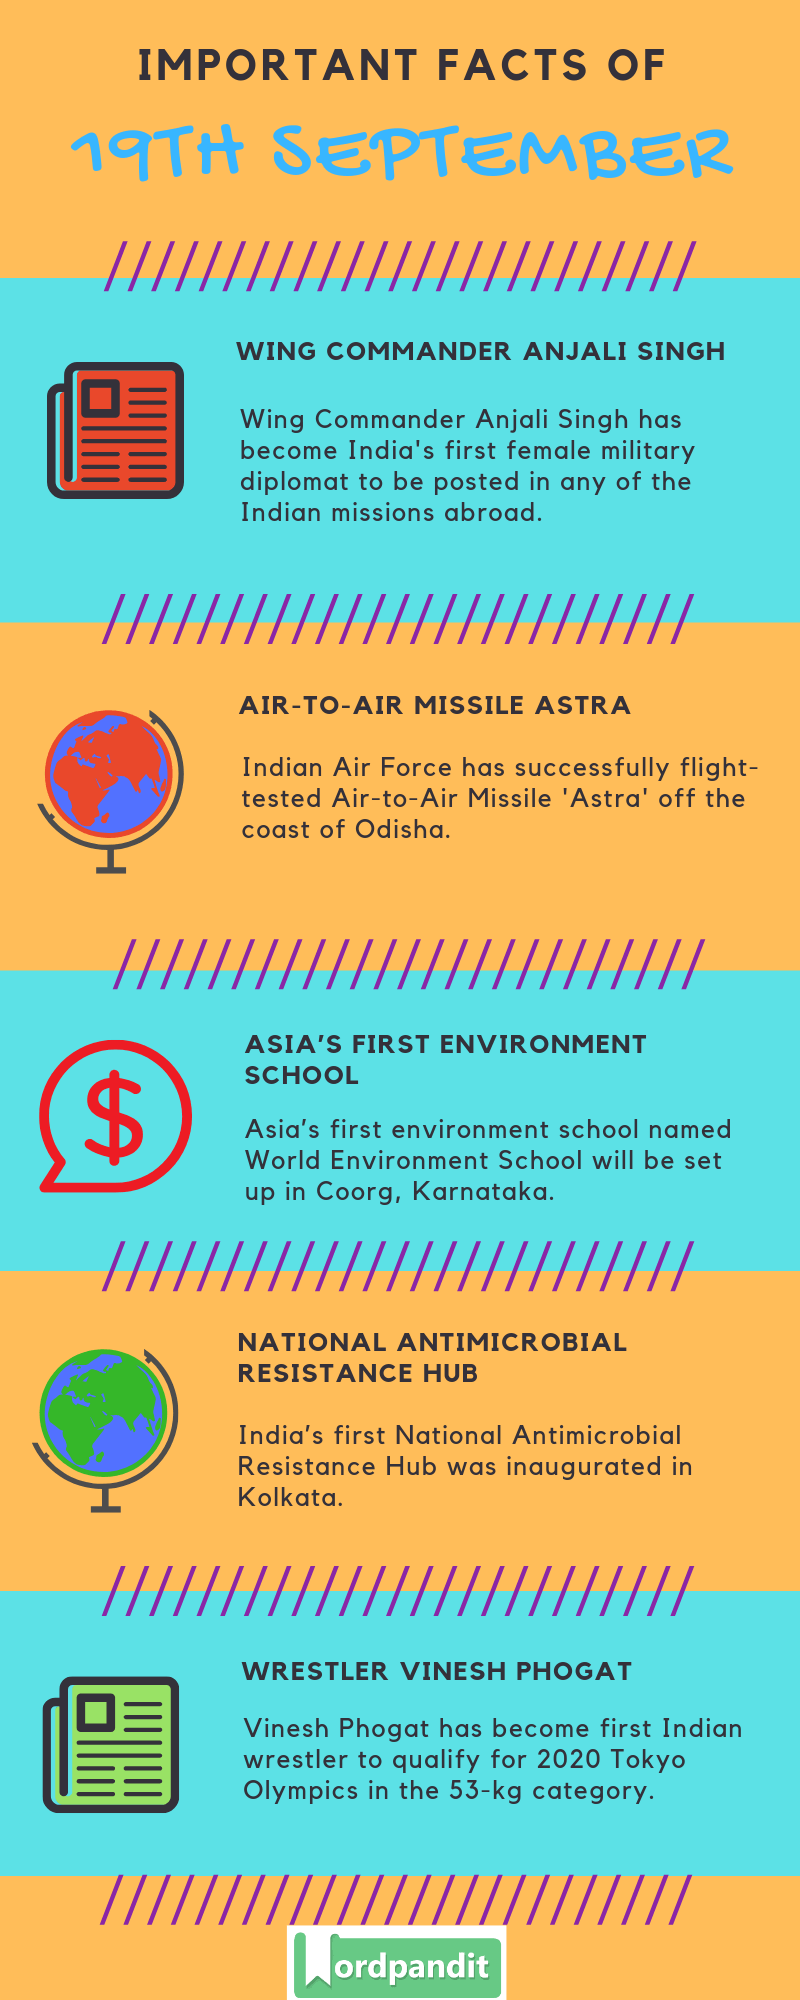 Daily Current Affairs 19 September 2019 Current Affairs Quiz 19 September 2019 Current Affairs Infographic